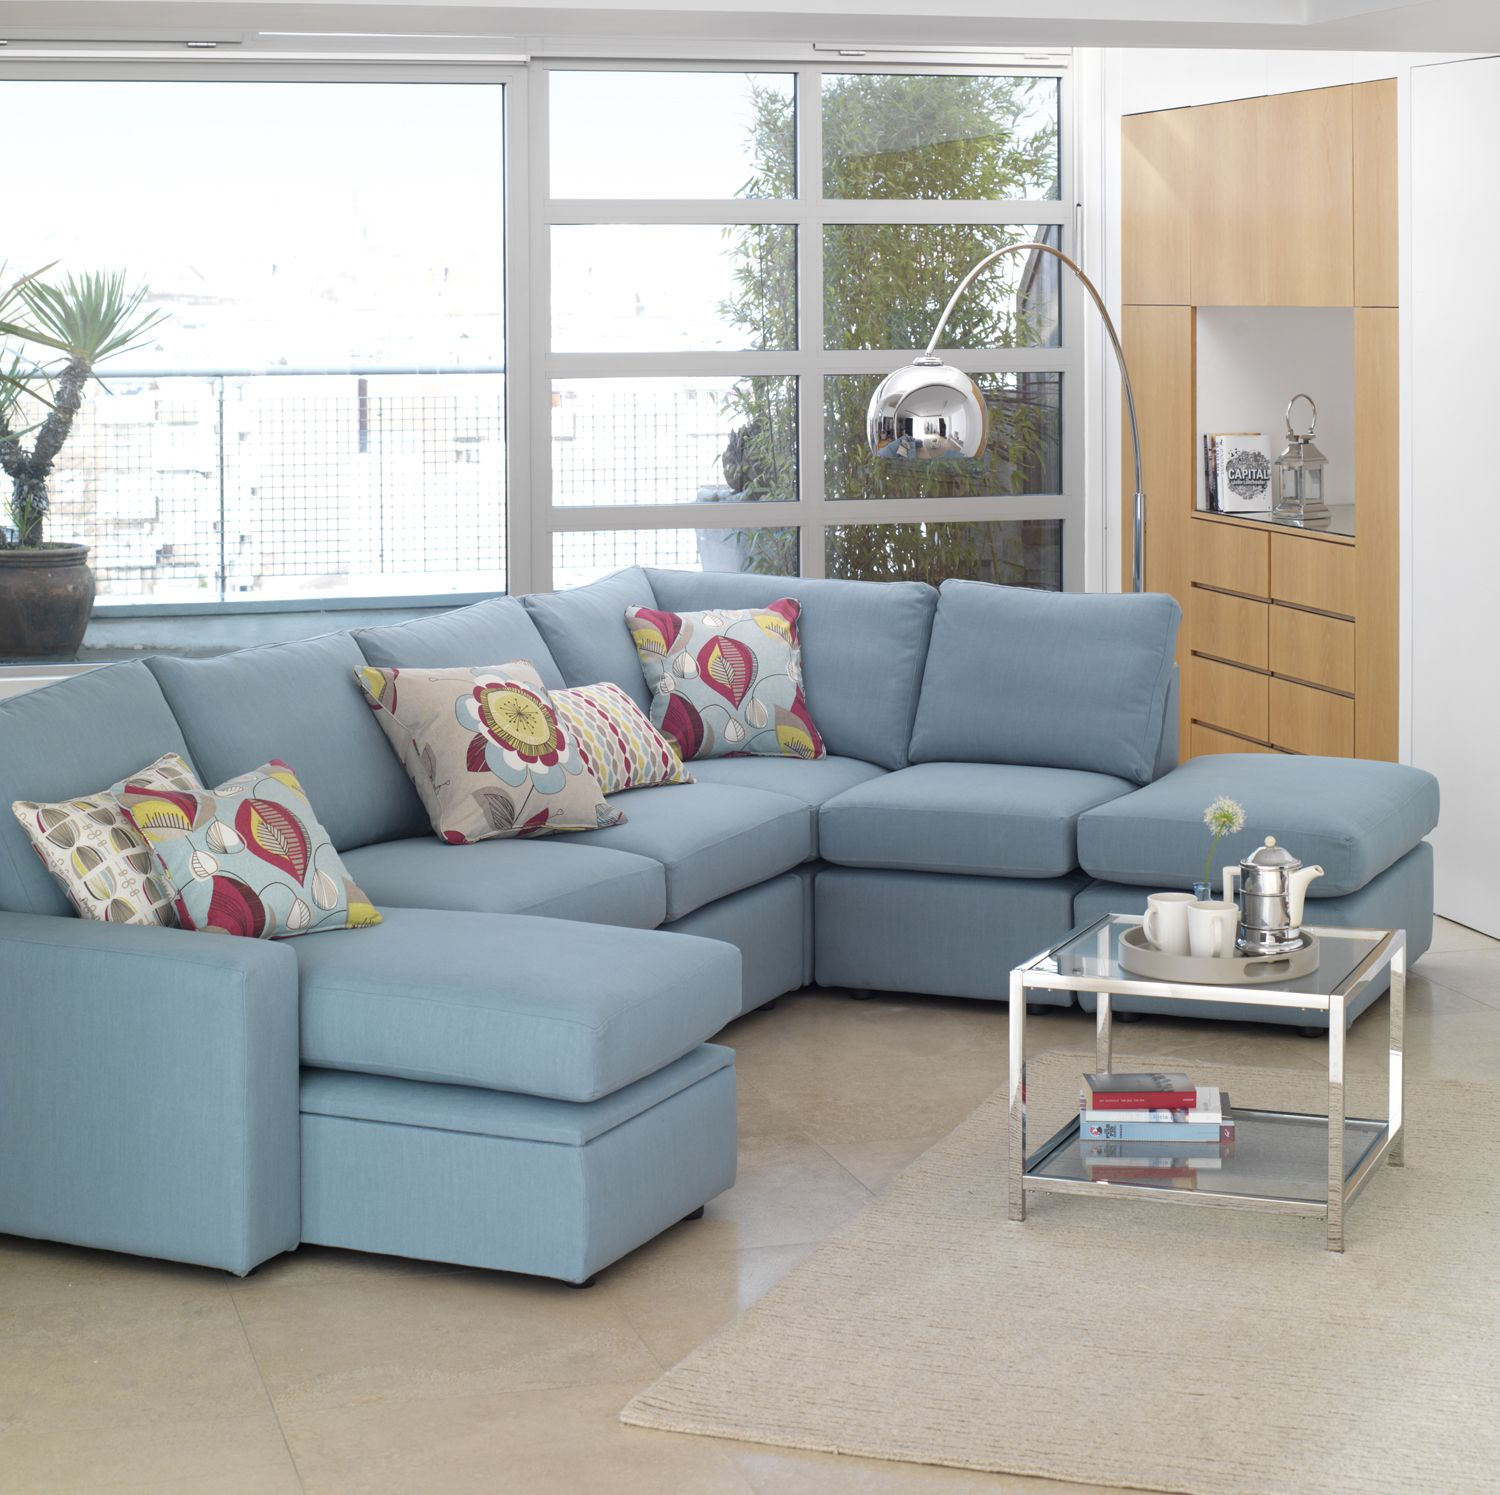 love your home corner sofa sofas beds the chaise on left side  dream